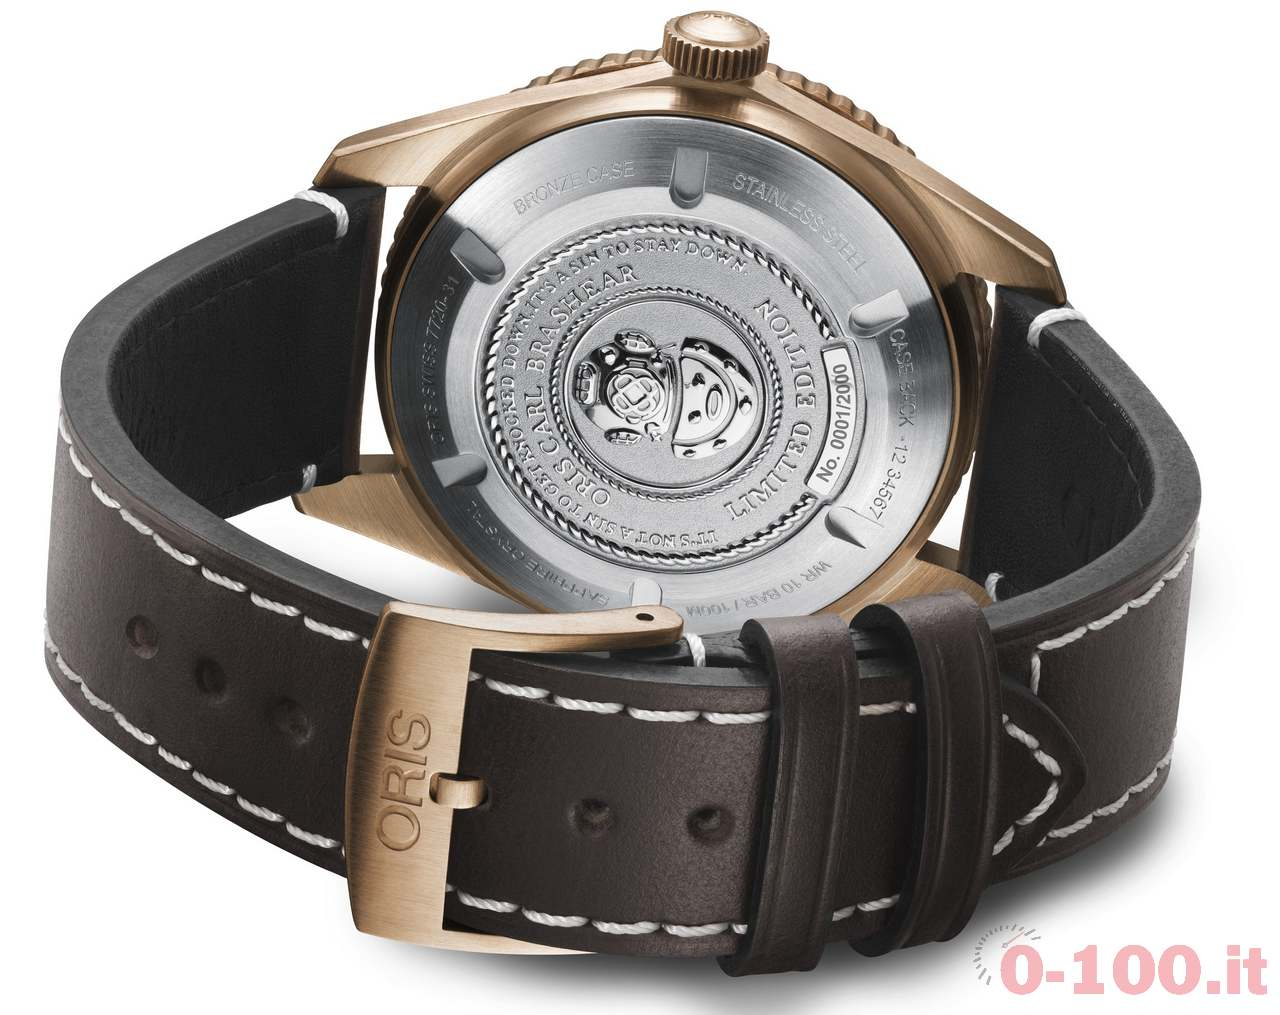 01 733 7720 3185-Set LS - Oris Carl Brashear Limited Edition_HighRes_4779 (2)